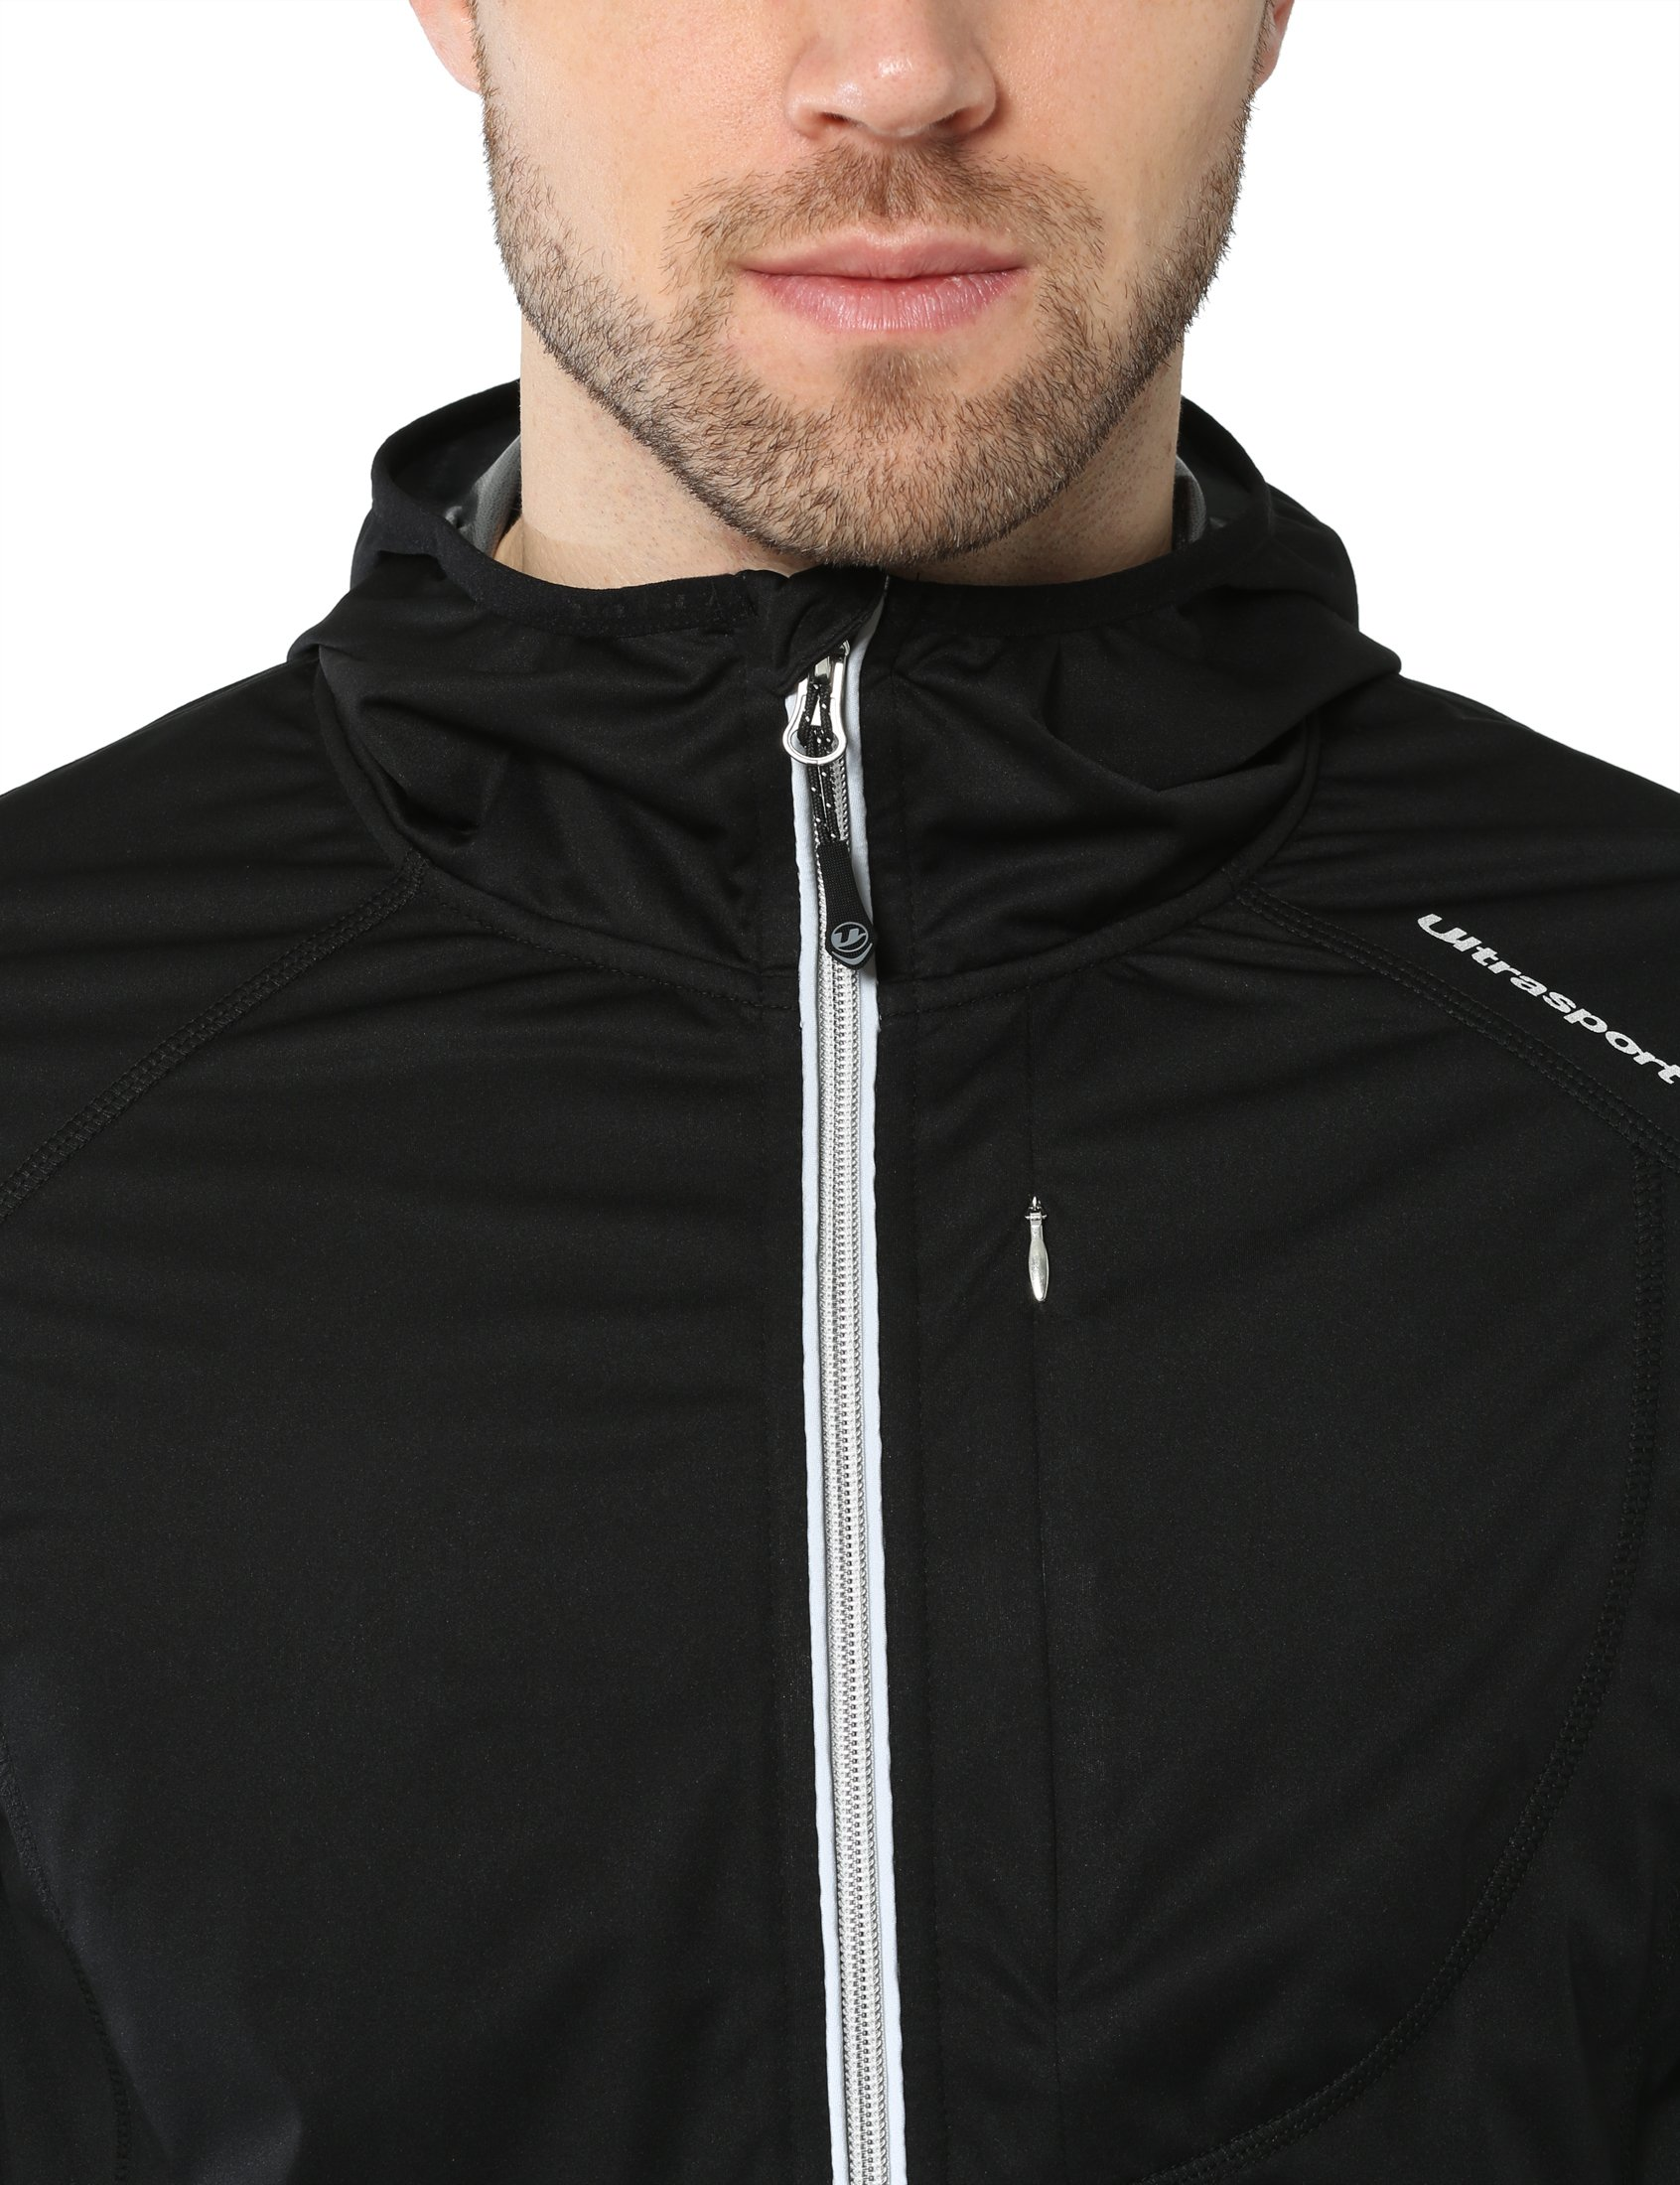 wind and waterproof which makes it perfect as a running jacket lightweight and breathable Ultrasport Mens Multifunctional Jacket Endy with Ultraflow 3,000 training jacket or cycling jacket